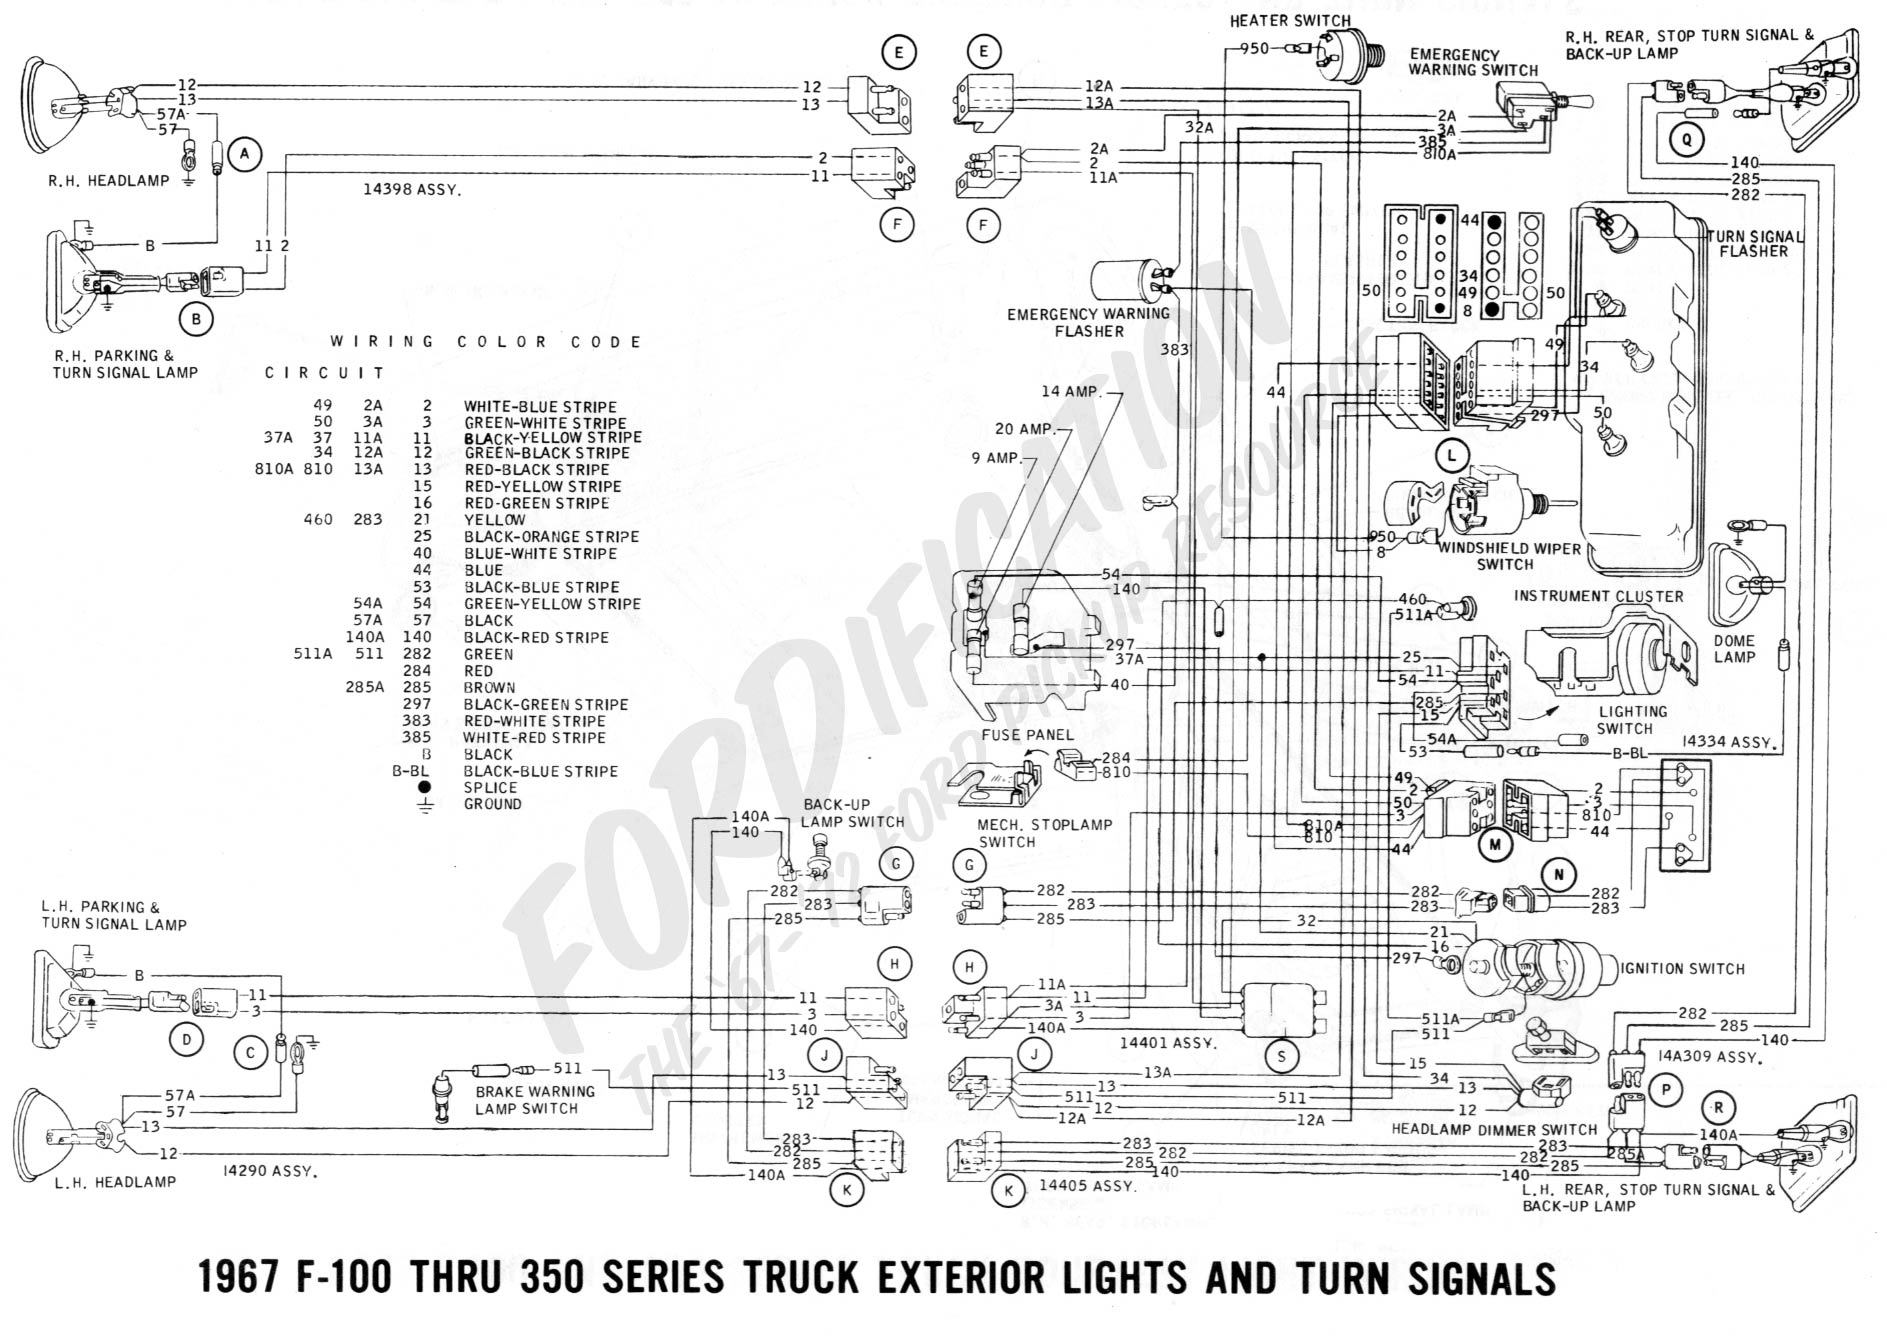 80 1967_exterior_lights_and_turn_signals_page_2_1db6c529c4c9567560e56d6320f993290ba5b803 1967 mustang wiring diagram efcaviation com 1967 mustang wiring diagram at alyssarenee.co